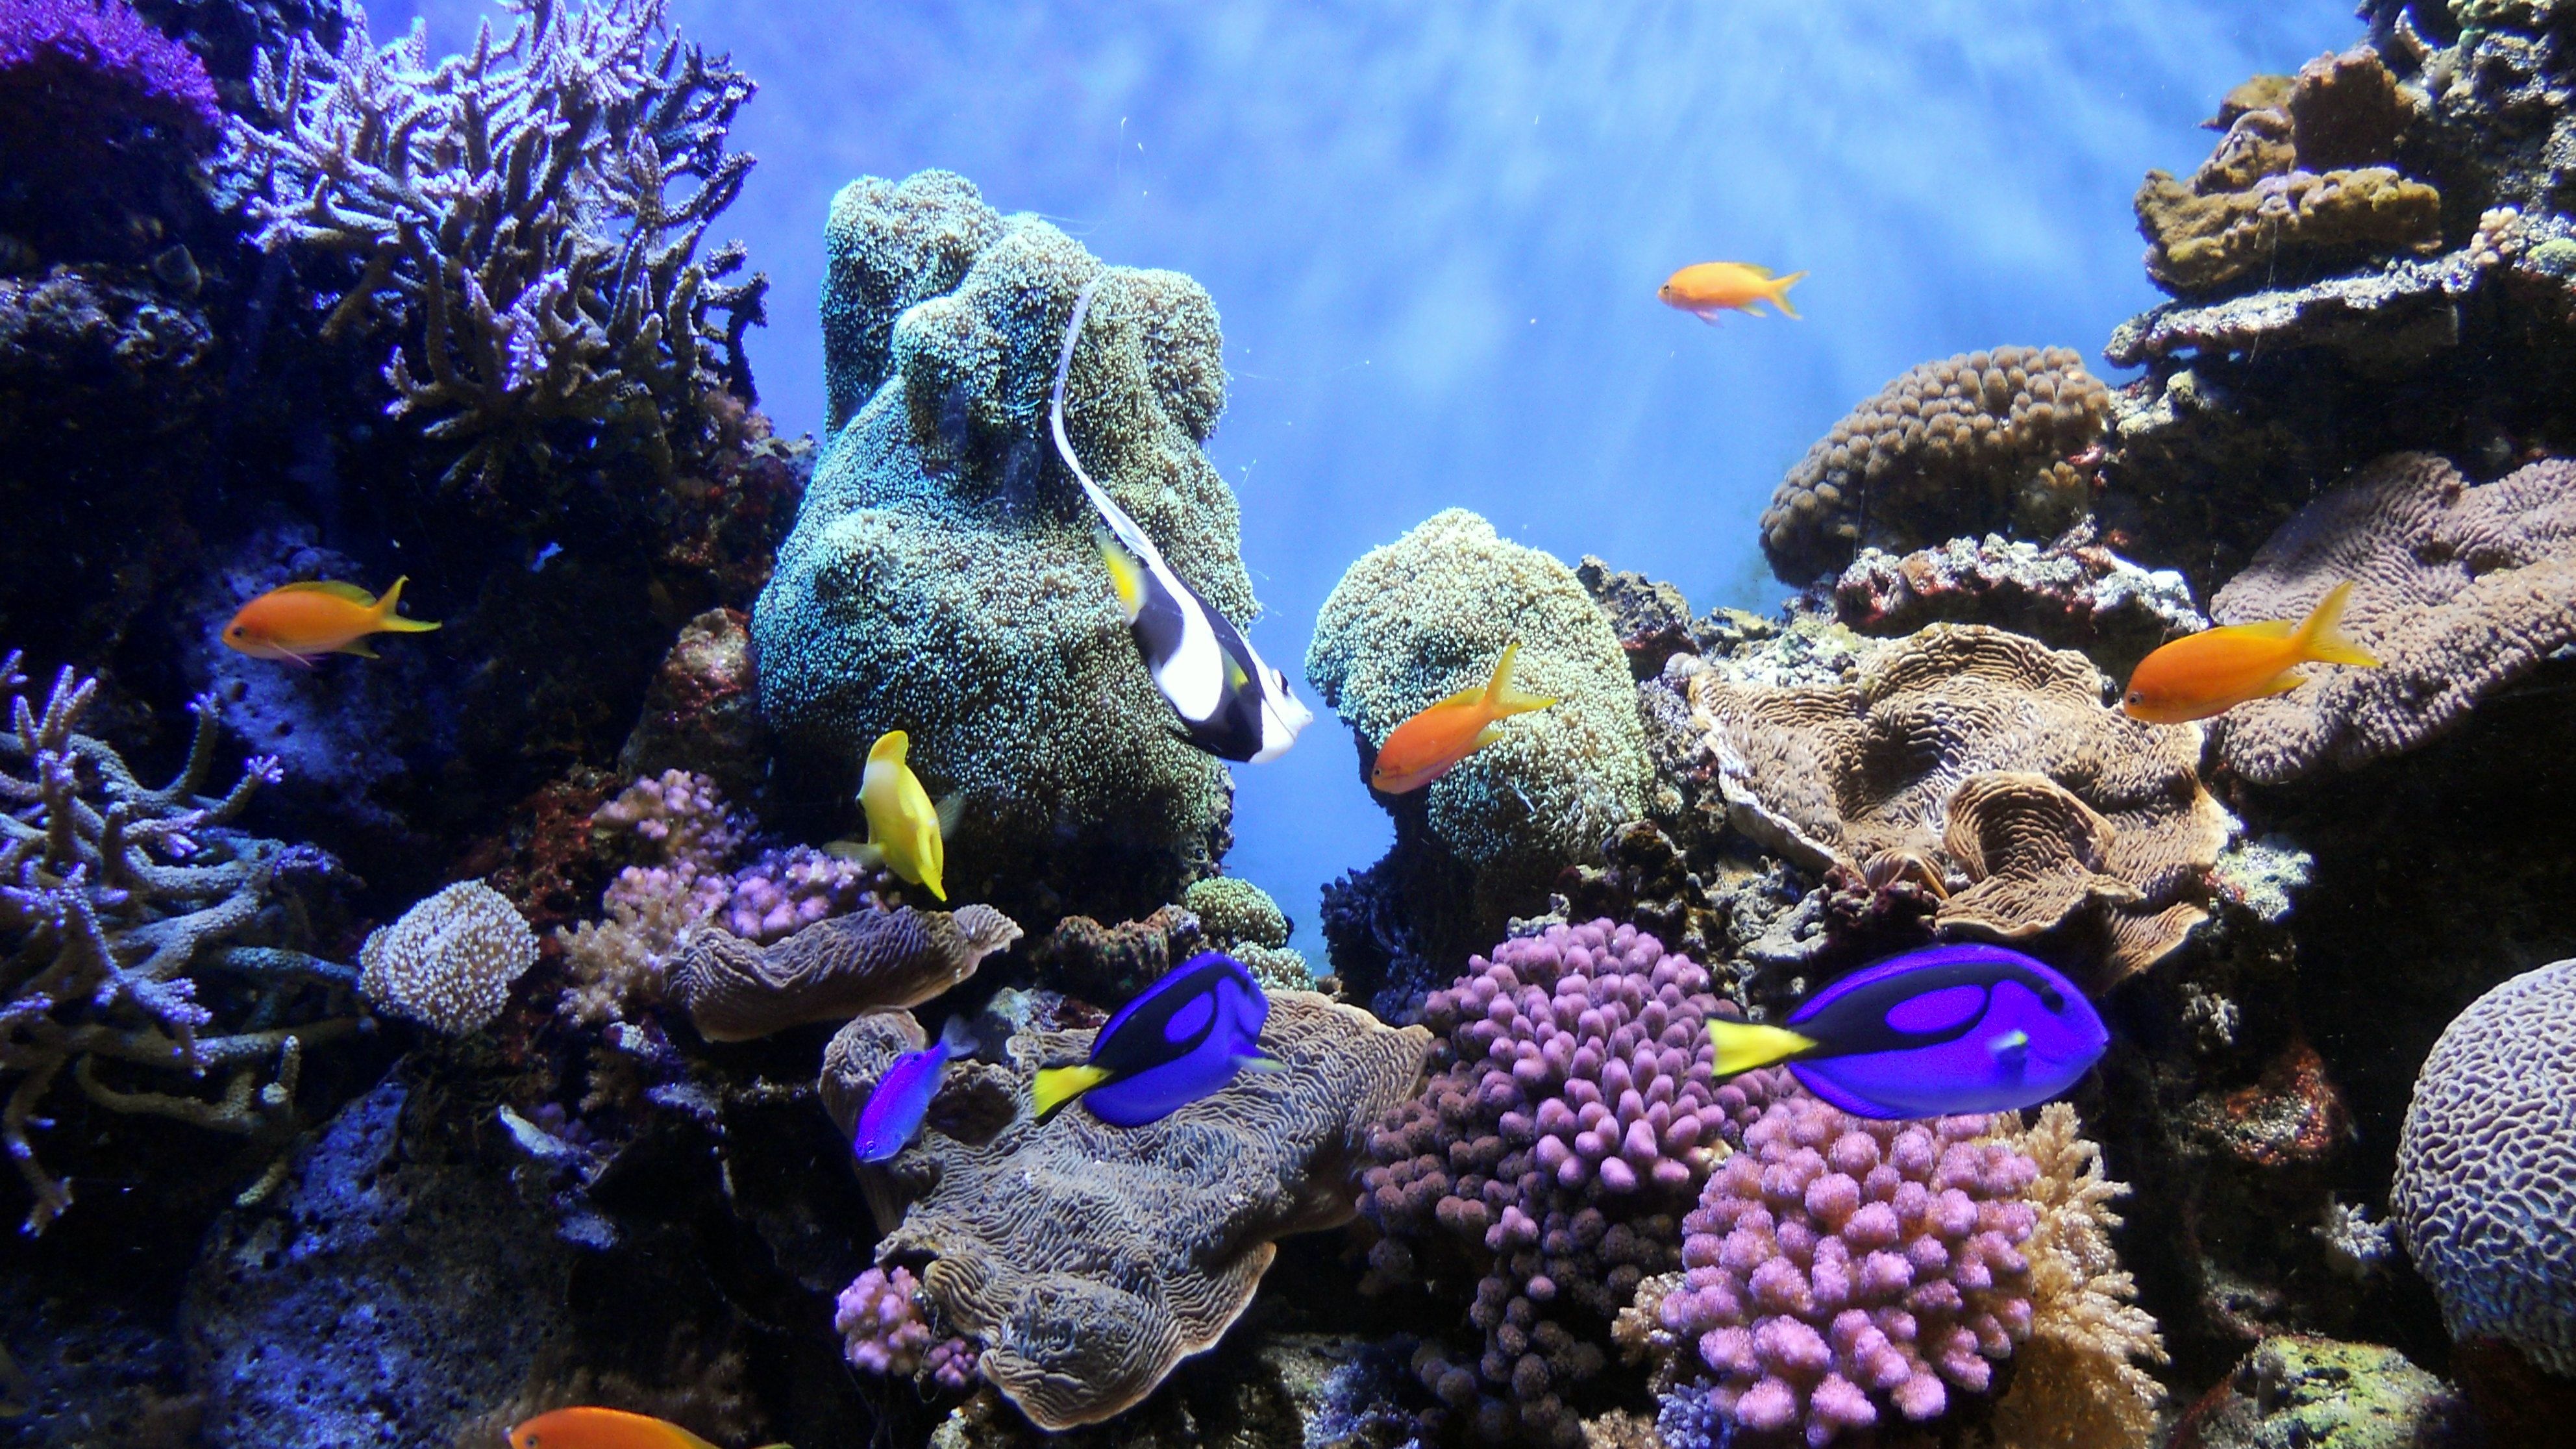 The next Finding Nemo movie will have the fishes finding a new home. But they will die first. Because there are no more reefs left.